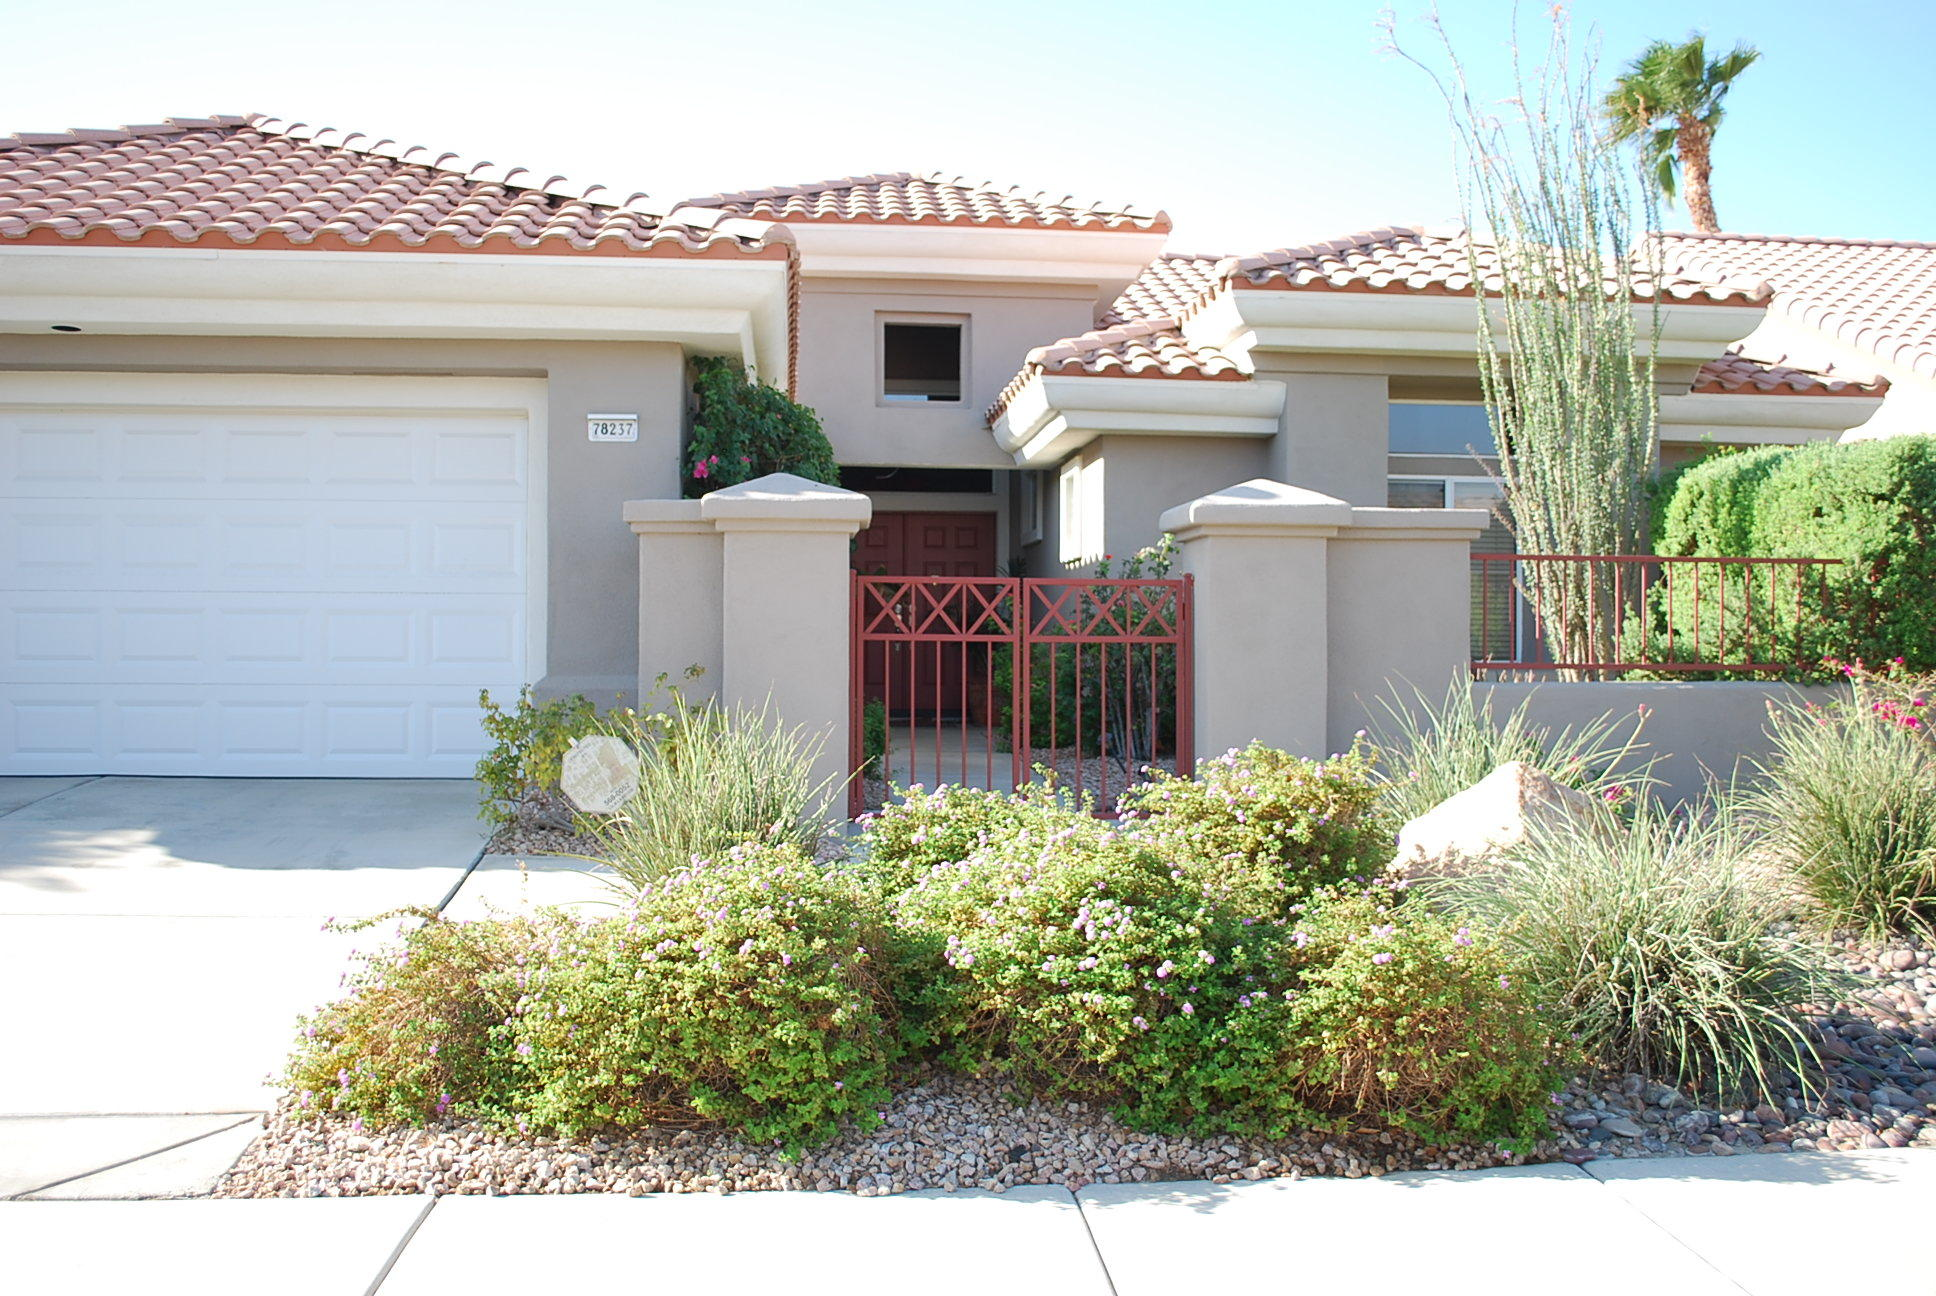 Photo of 78237 78-237 Willowrich Dr. Drive, Palm Desert, CA 92211